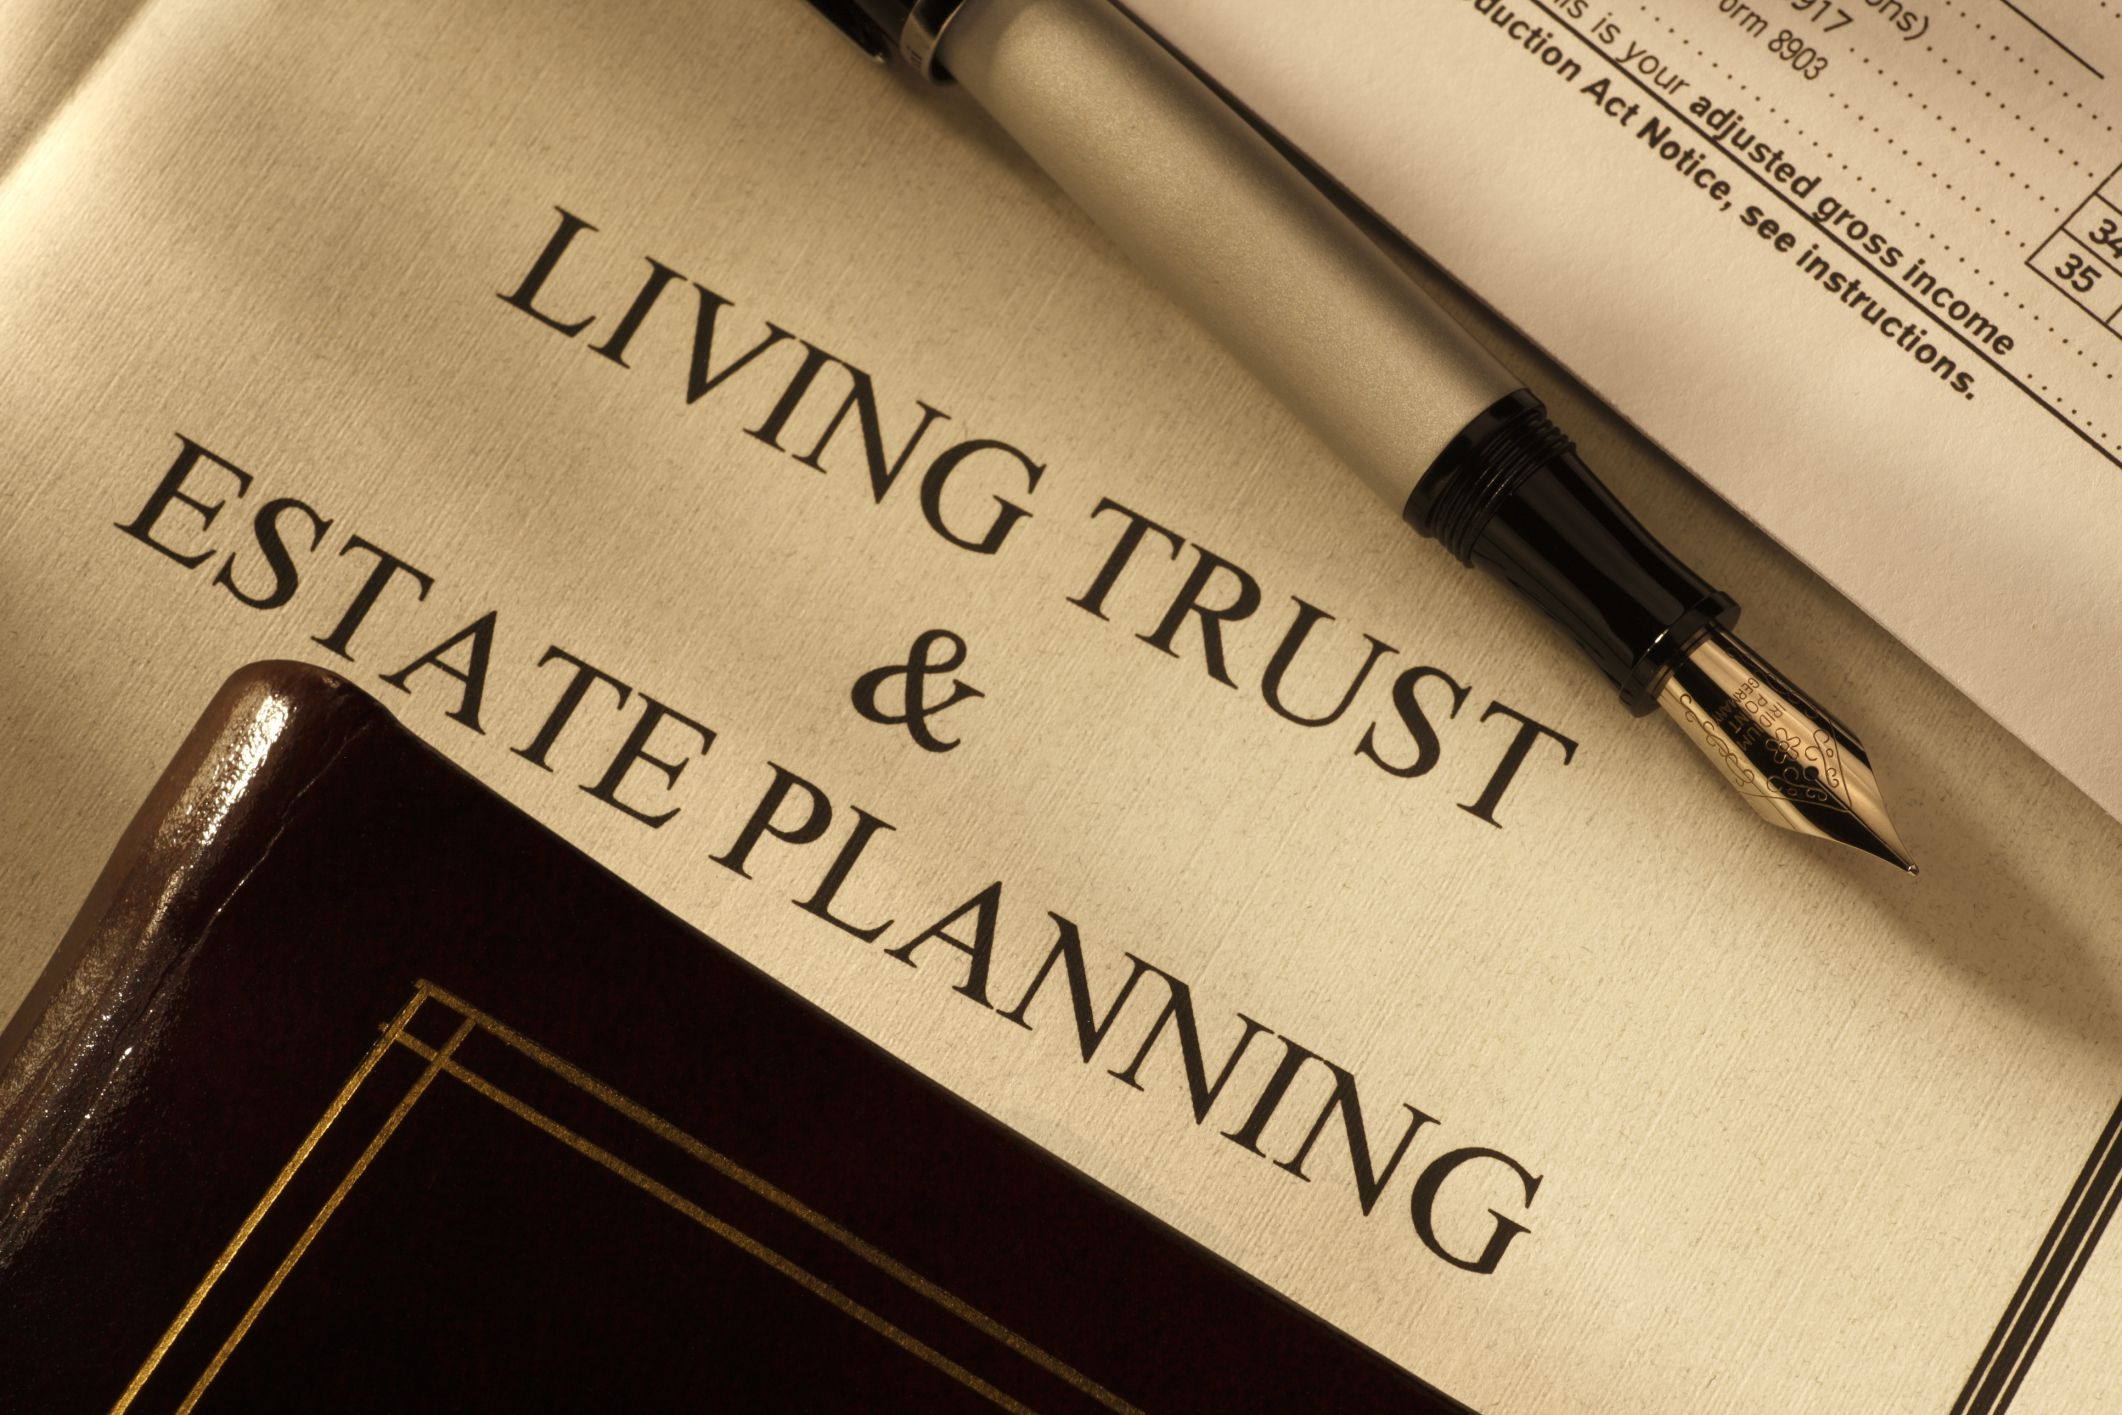 raleigh law firms, estate planning trusts